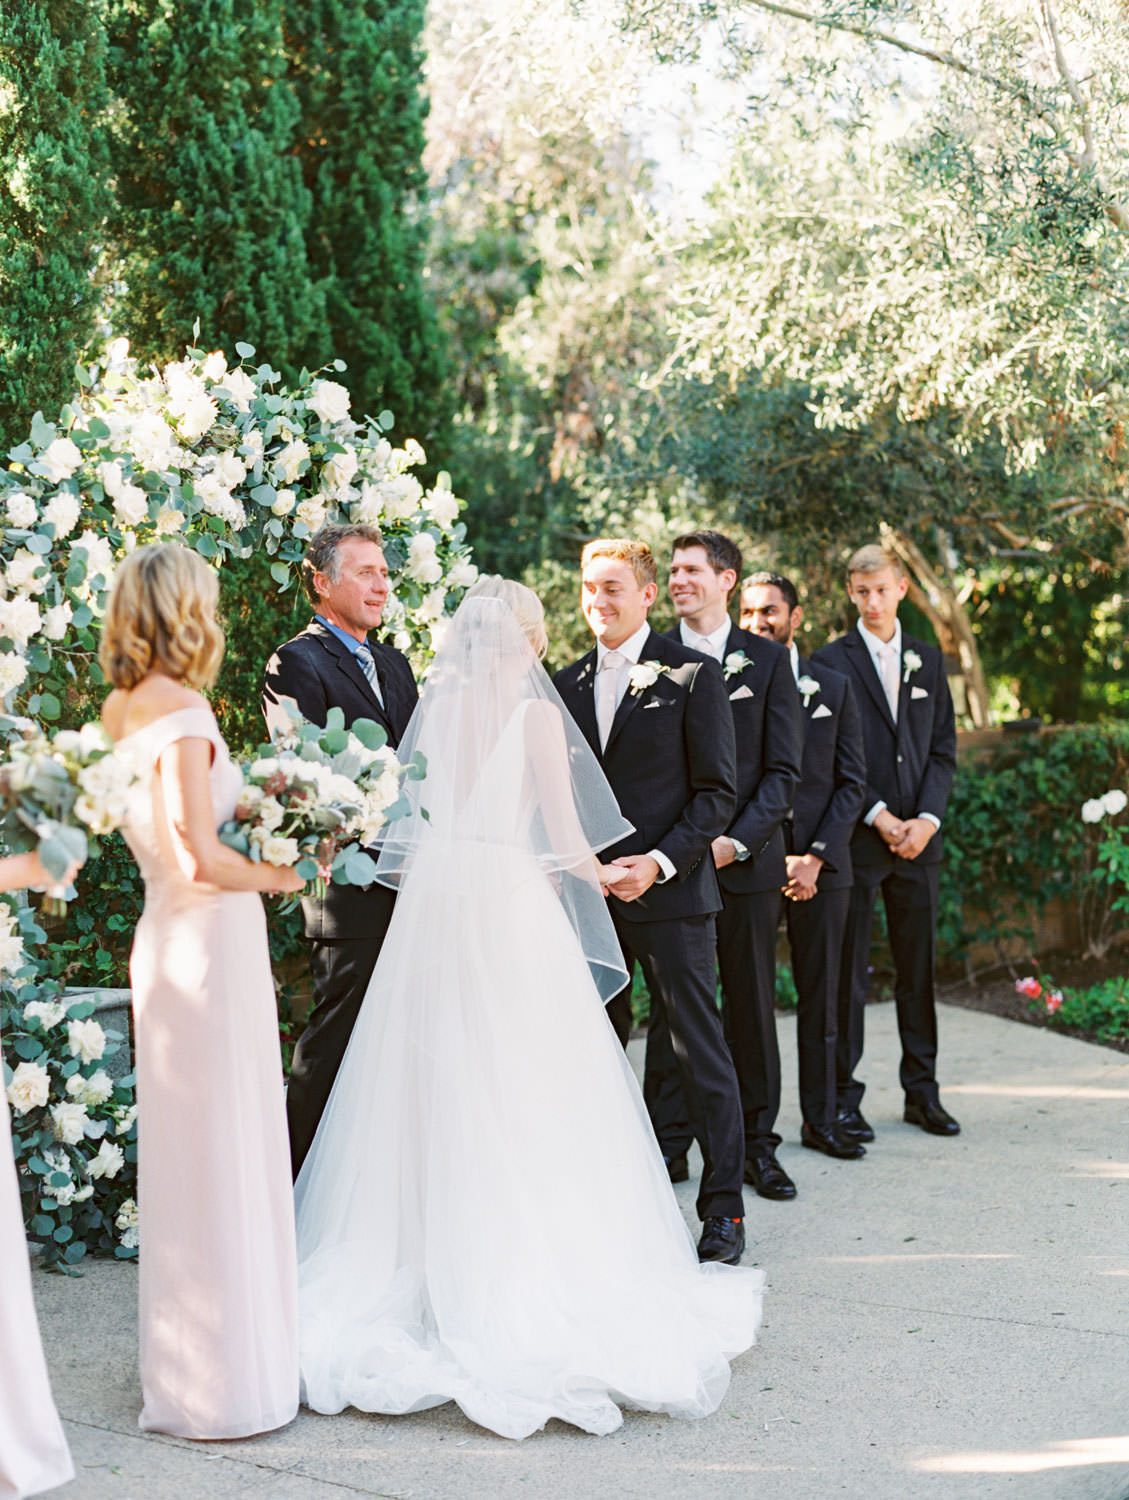 Groom smiling during ceremony. Circular ceremony arch with silver dollar eucalyptus, white dahlias and roses. Estancia La Jolla wedding shot on film by Cavin Elizabeth Photography